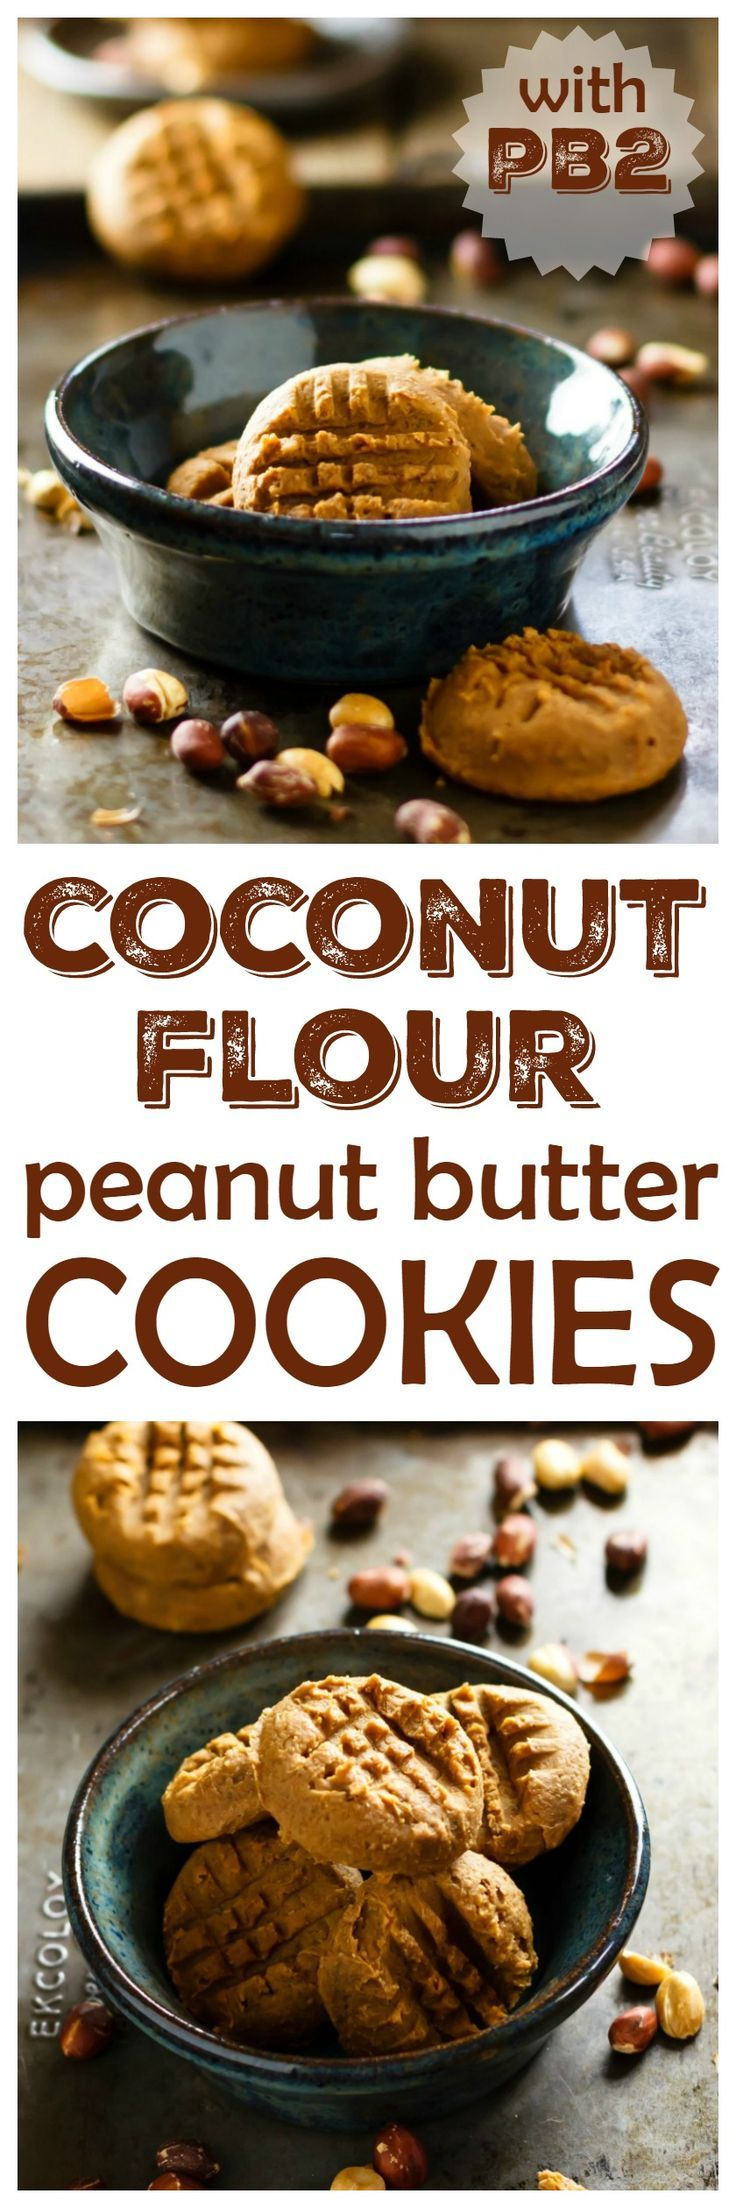 If you love coconut and peanut butter, my coconut flour peanut butter cookies are for you! I use PB2 for bold peanut butter taste with a lot less fat and calories. Vegan and gluten free! | eathealthyeathapp...